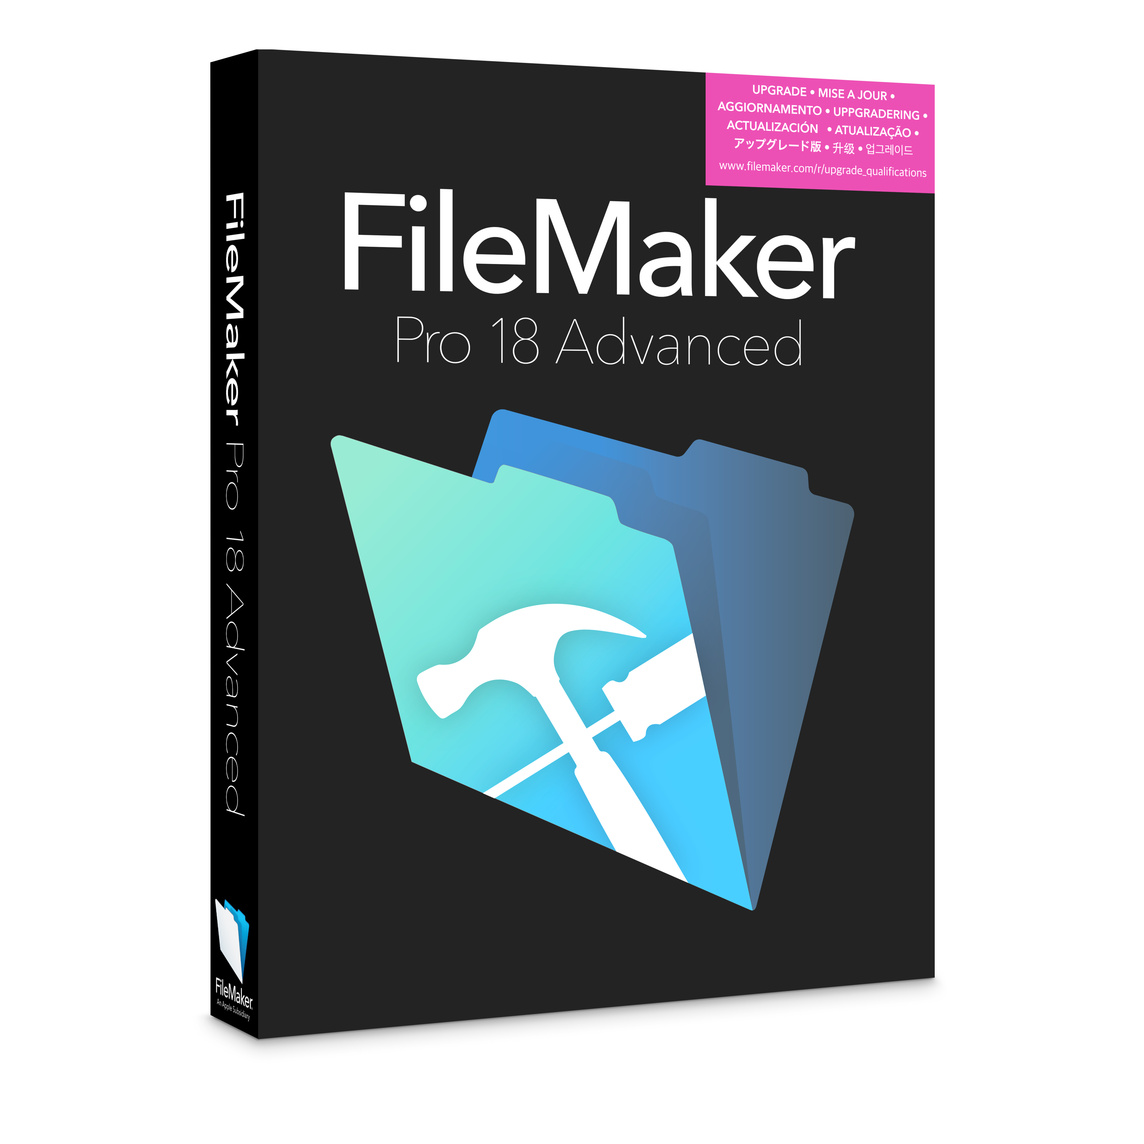 Filemaker Pro Courses upgrade to filemaker pro 18 advanced